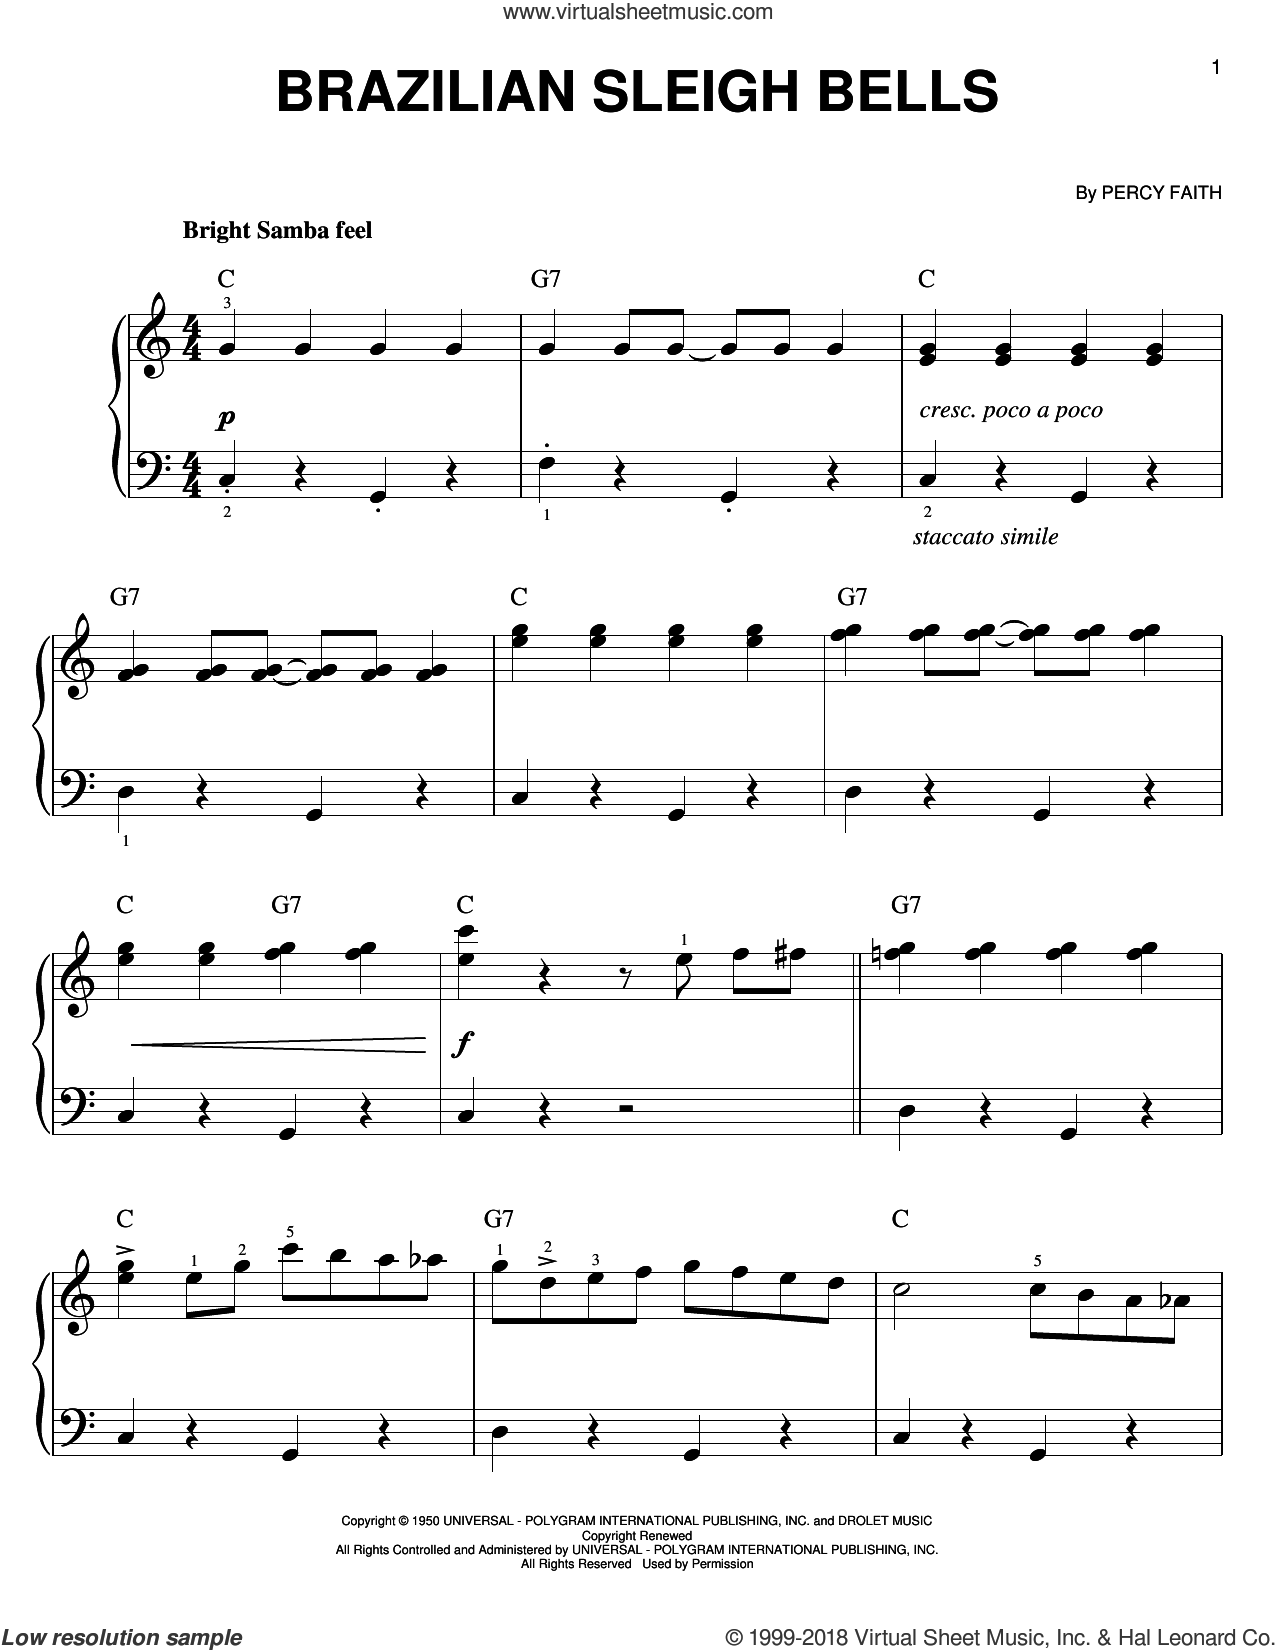 Brazilian Sleigh Bells sheet music for piano solo by Percy Faith, easy. Score Image Preview.